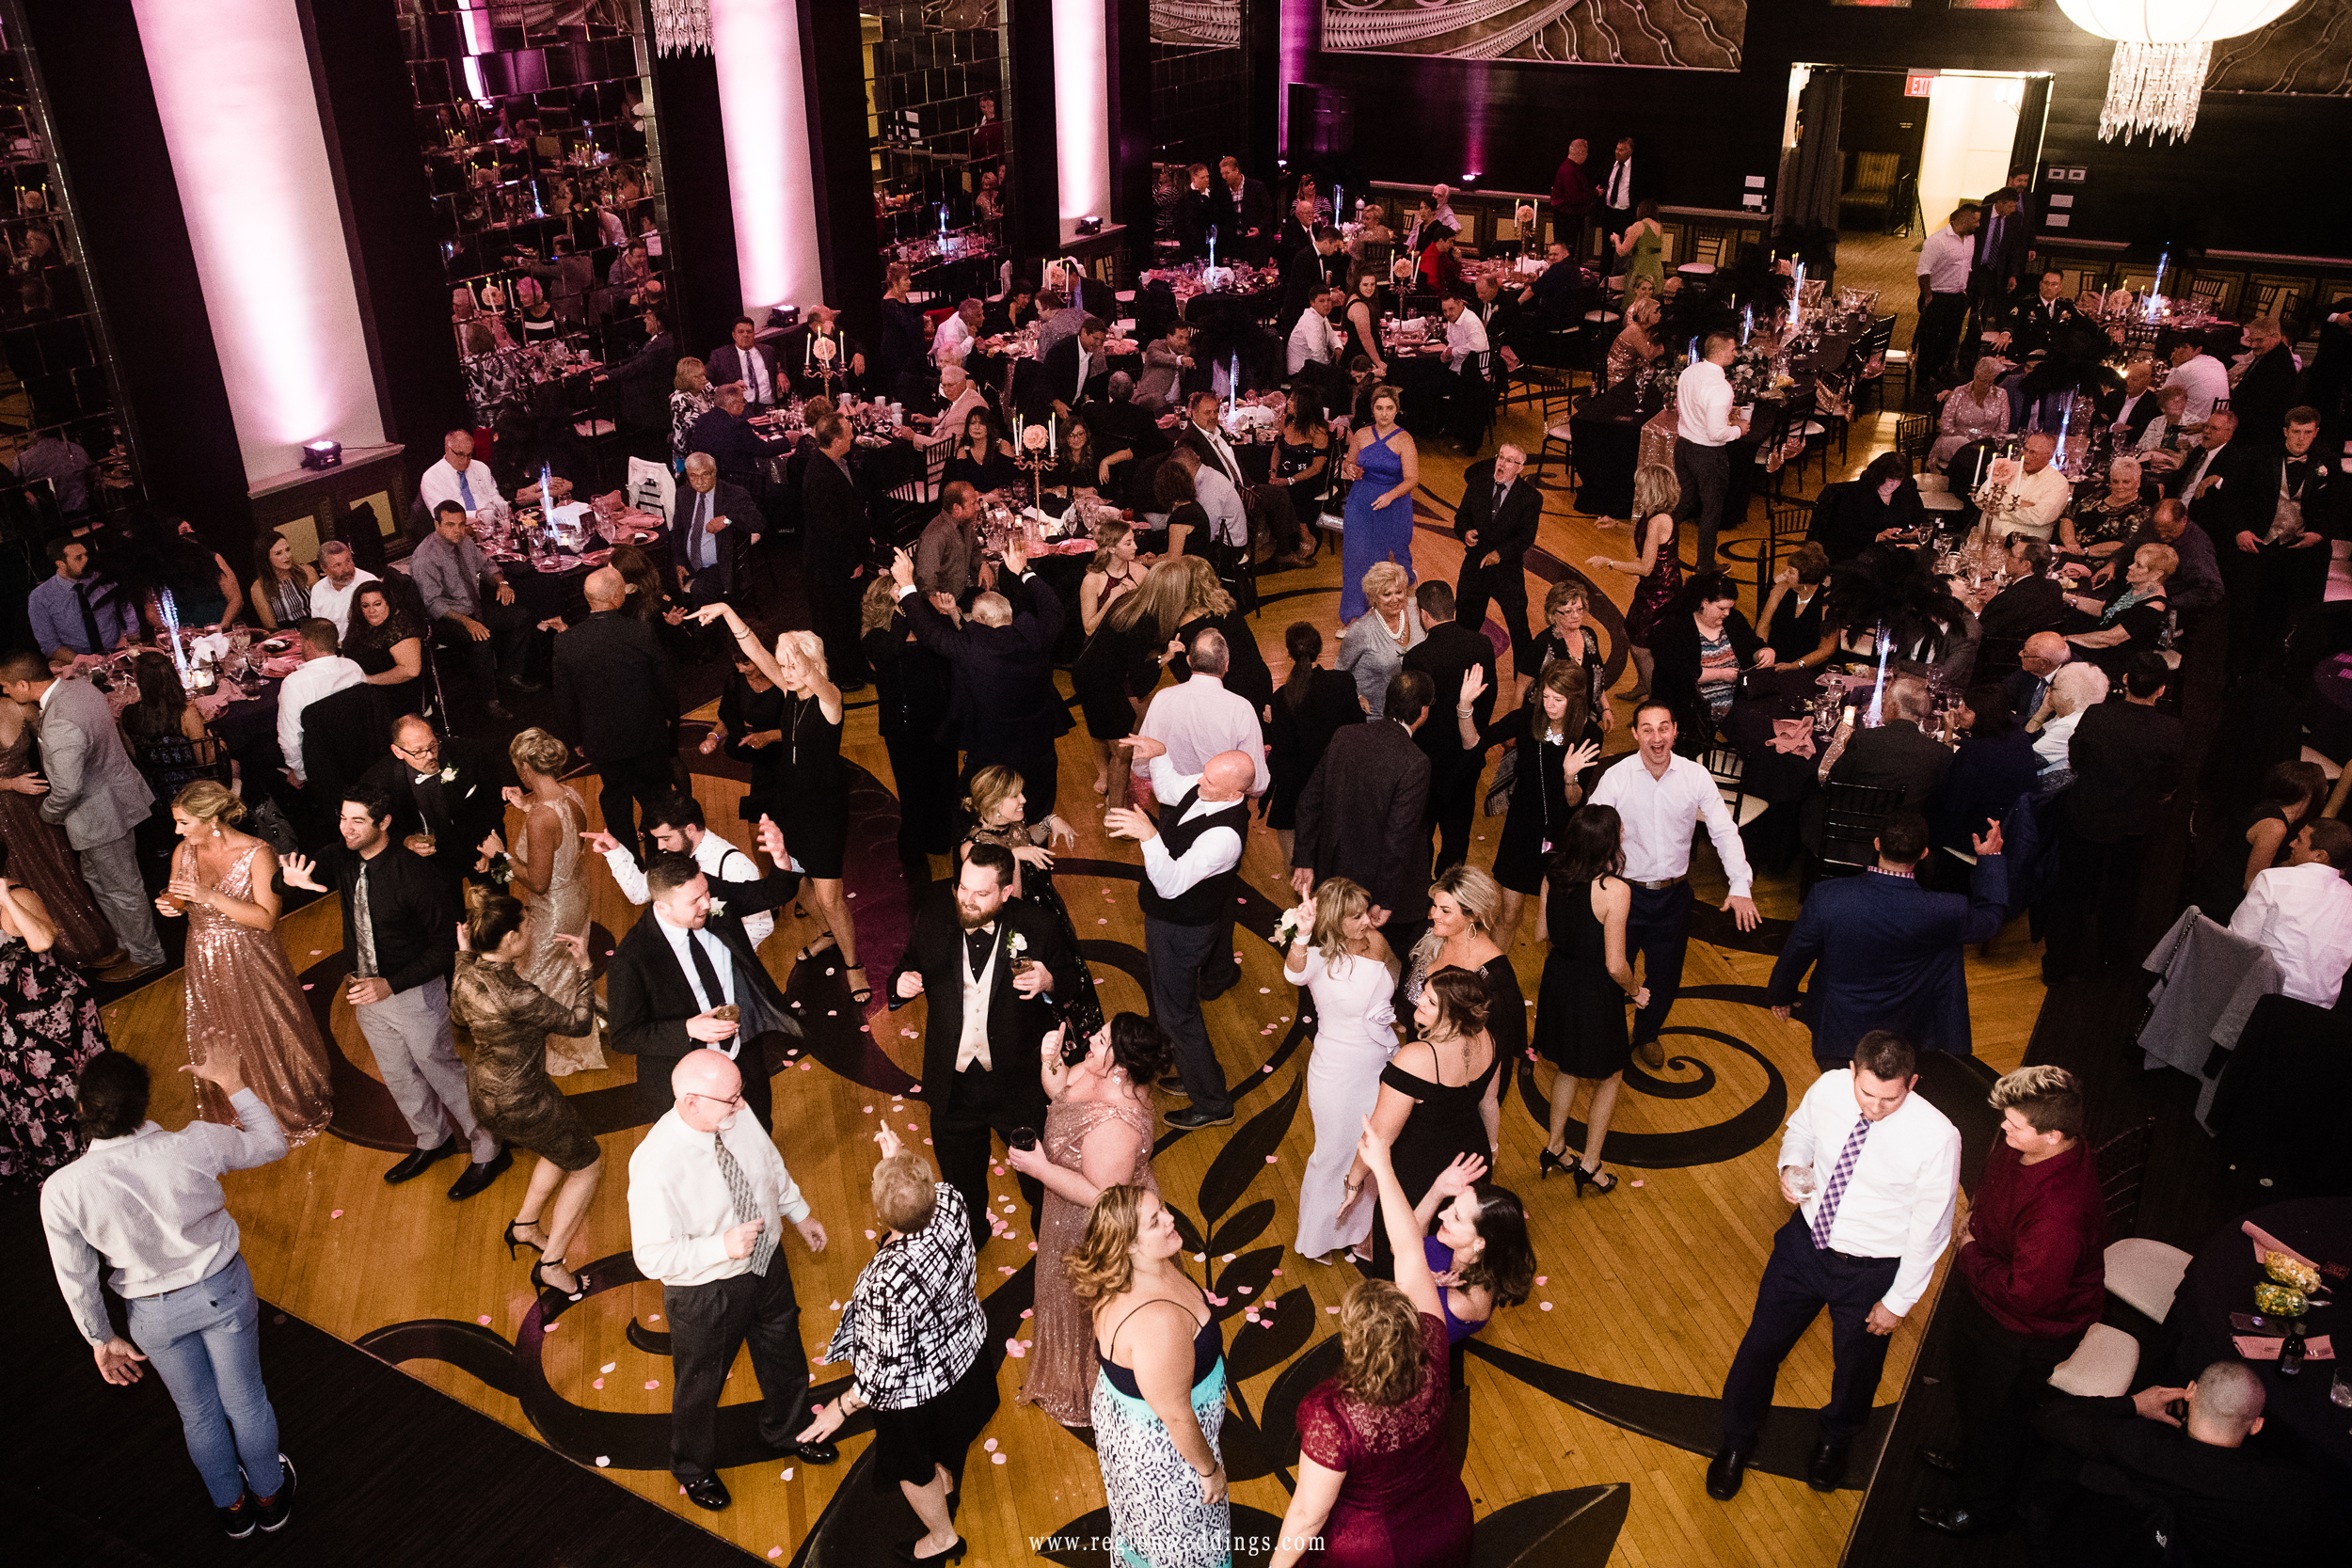 A packed dance floor at The Allure for a Fall wedding.